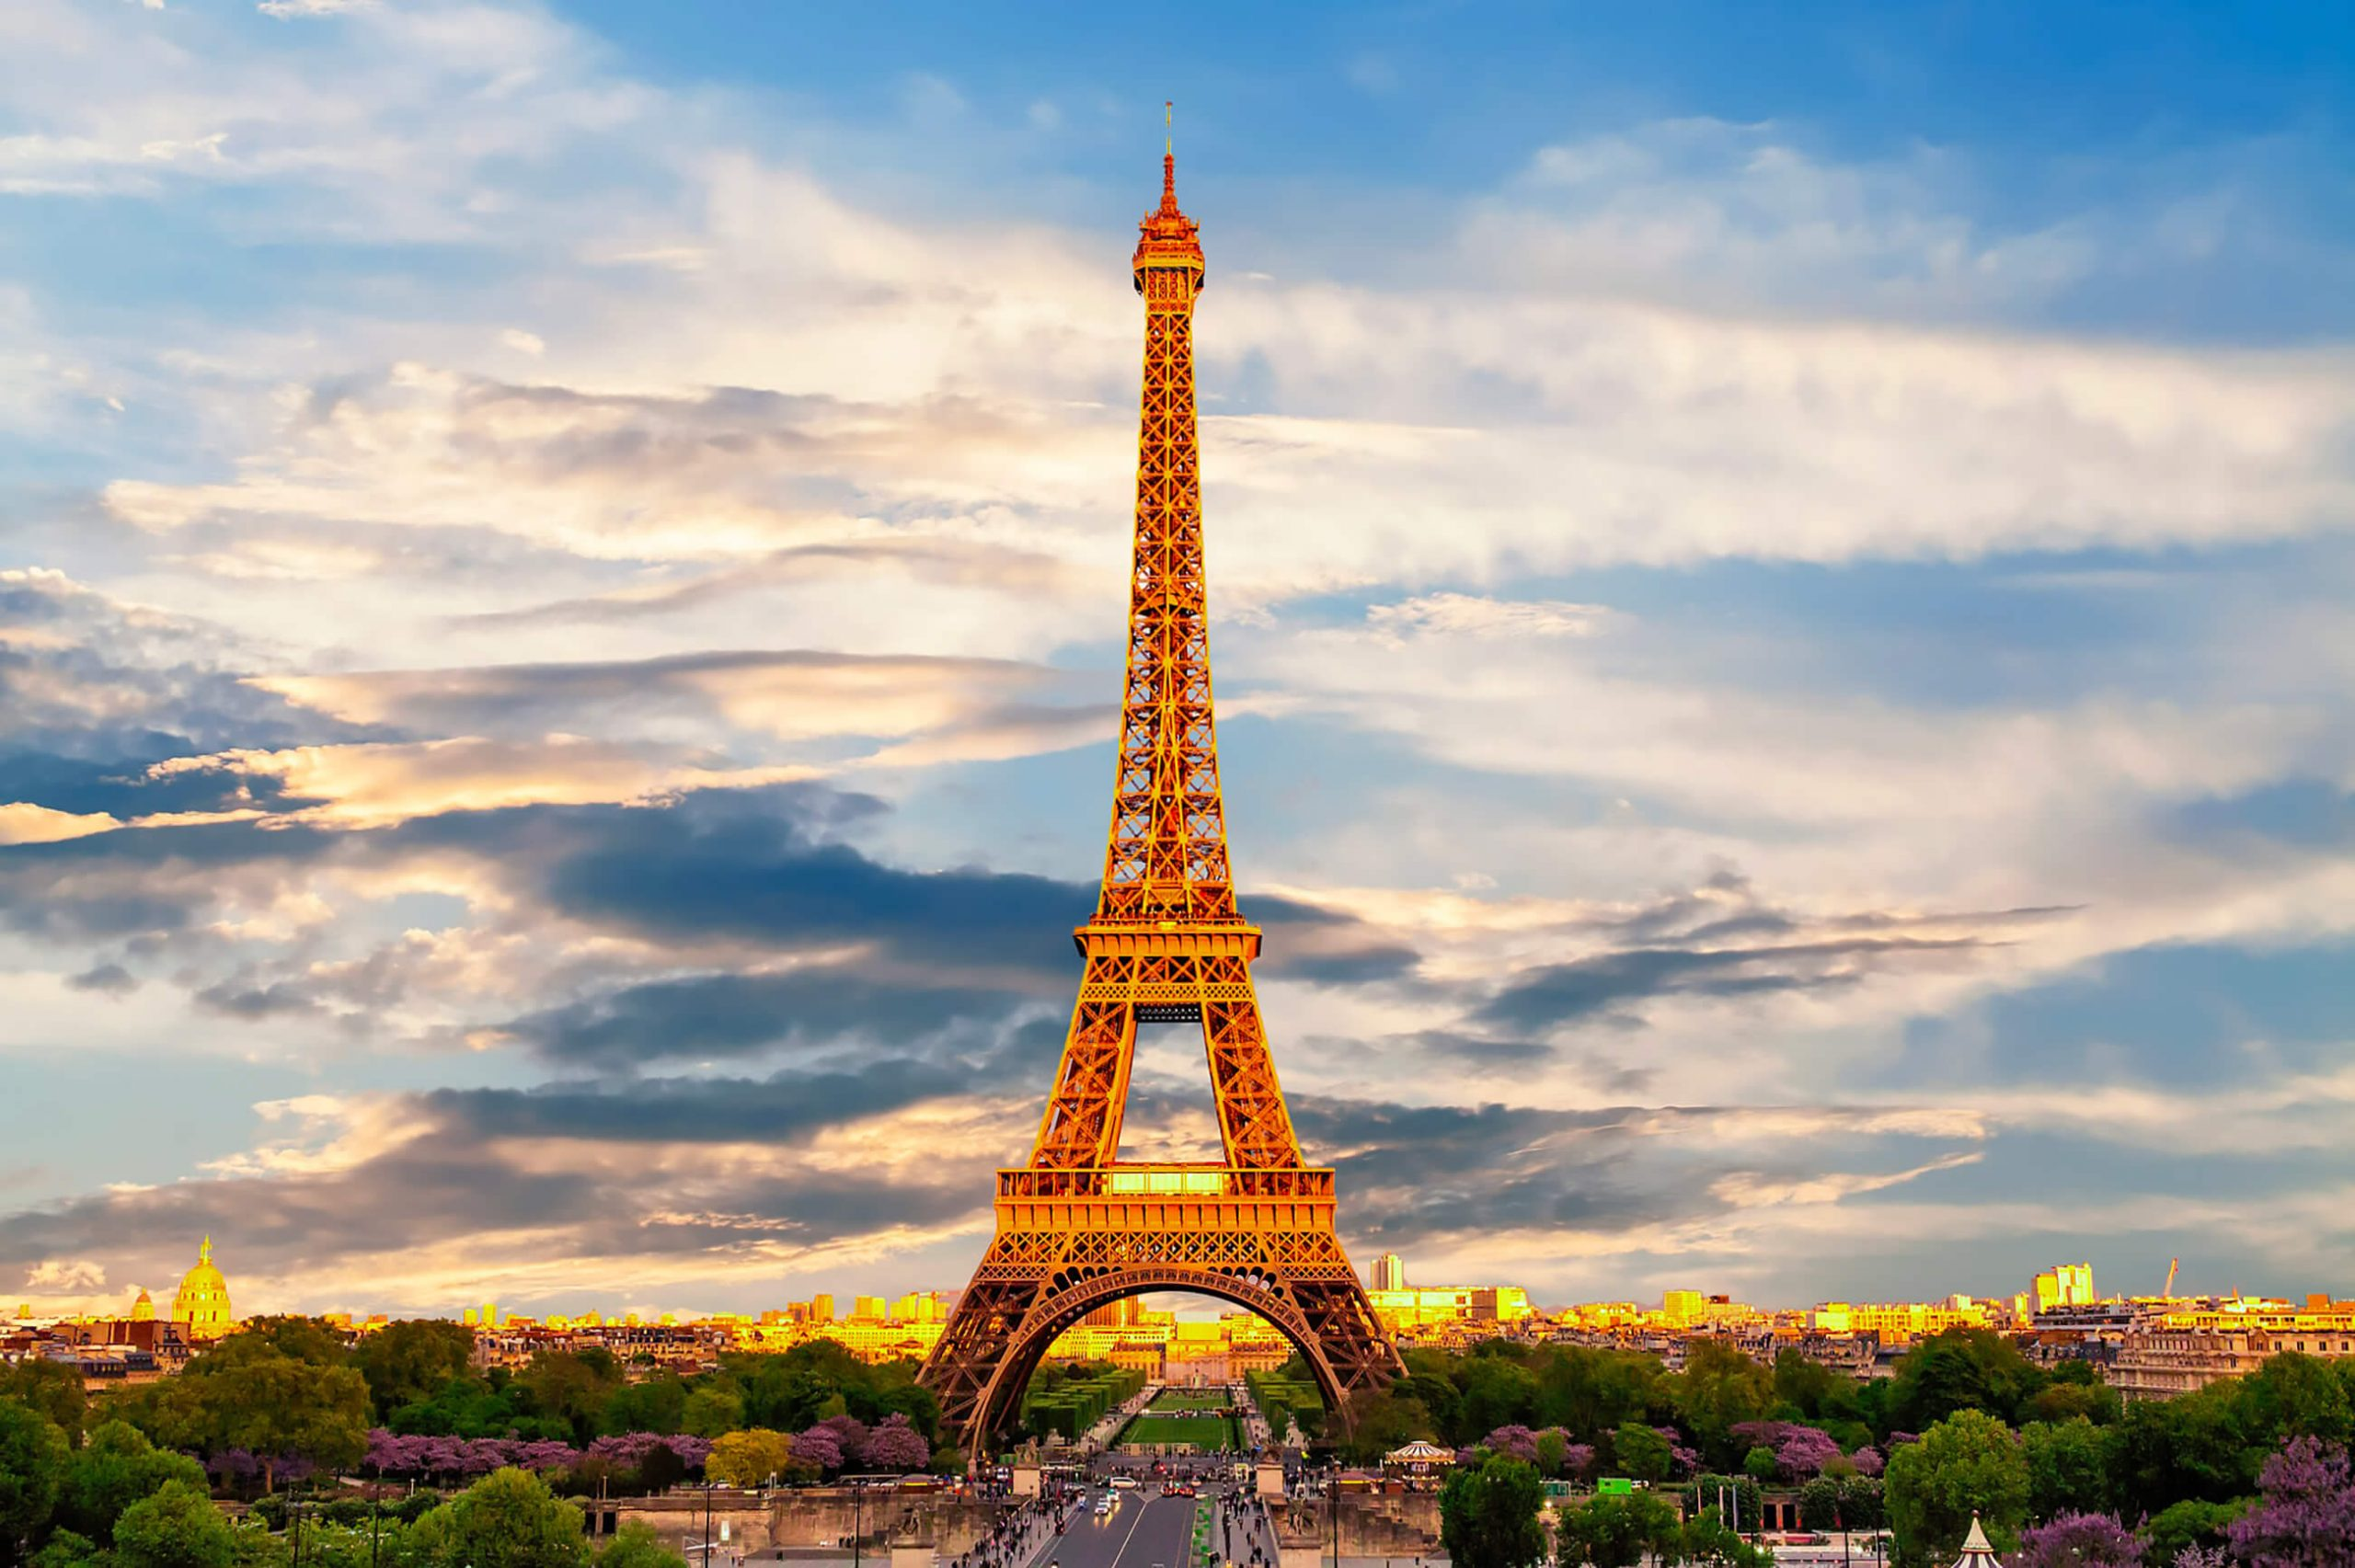 An Image of the Eiffel Tower in Paris, the Economic Heart of France